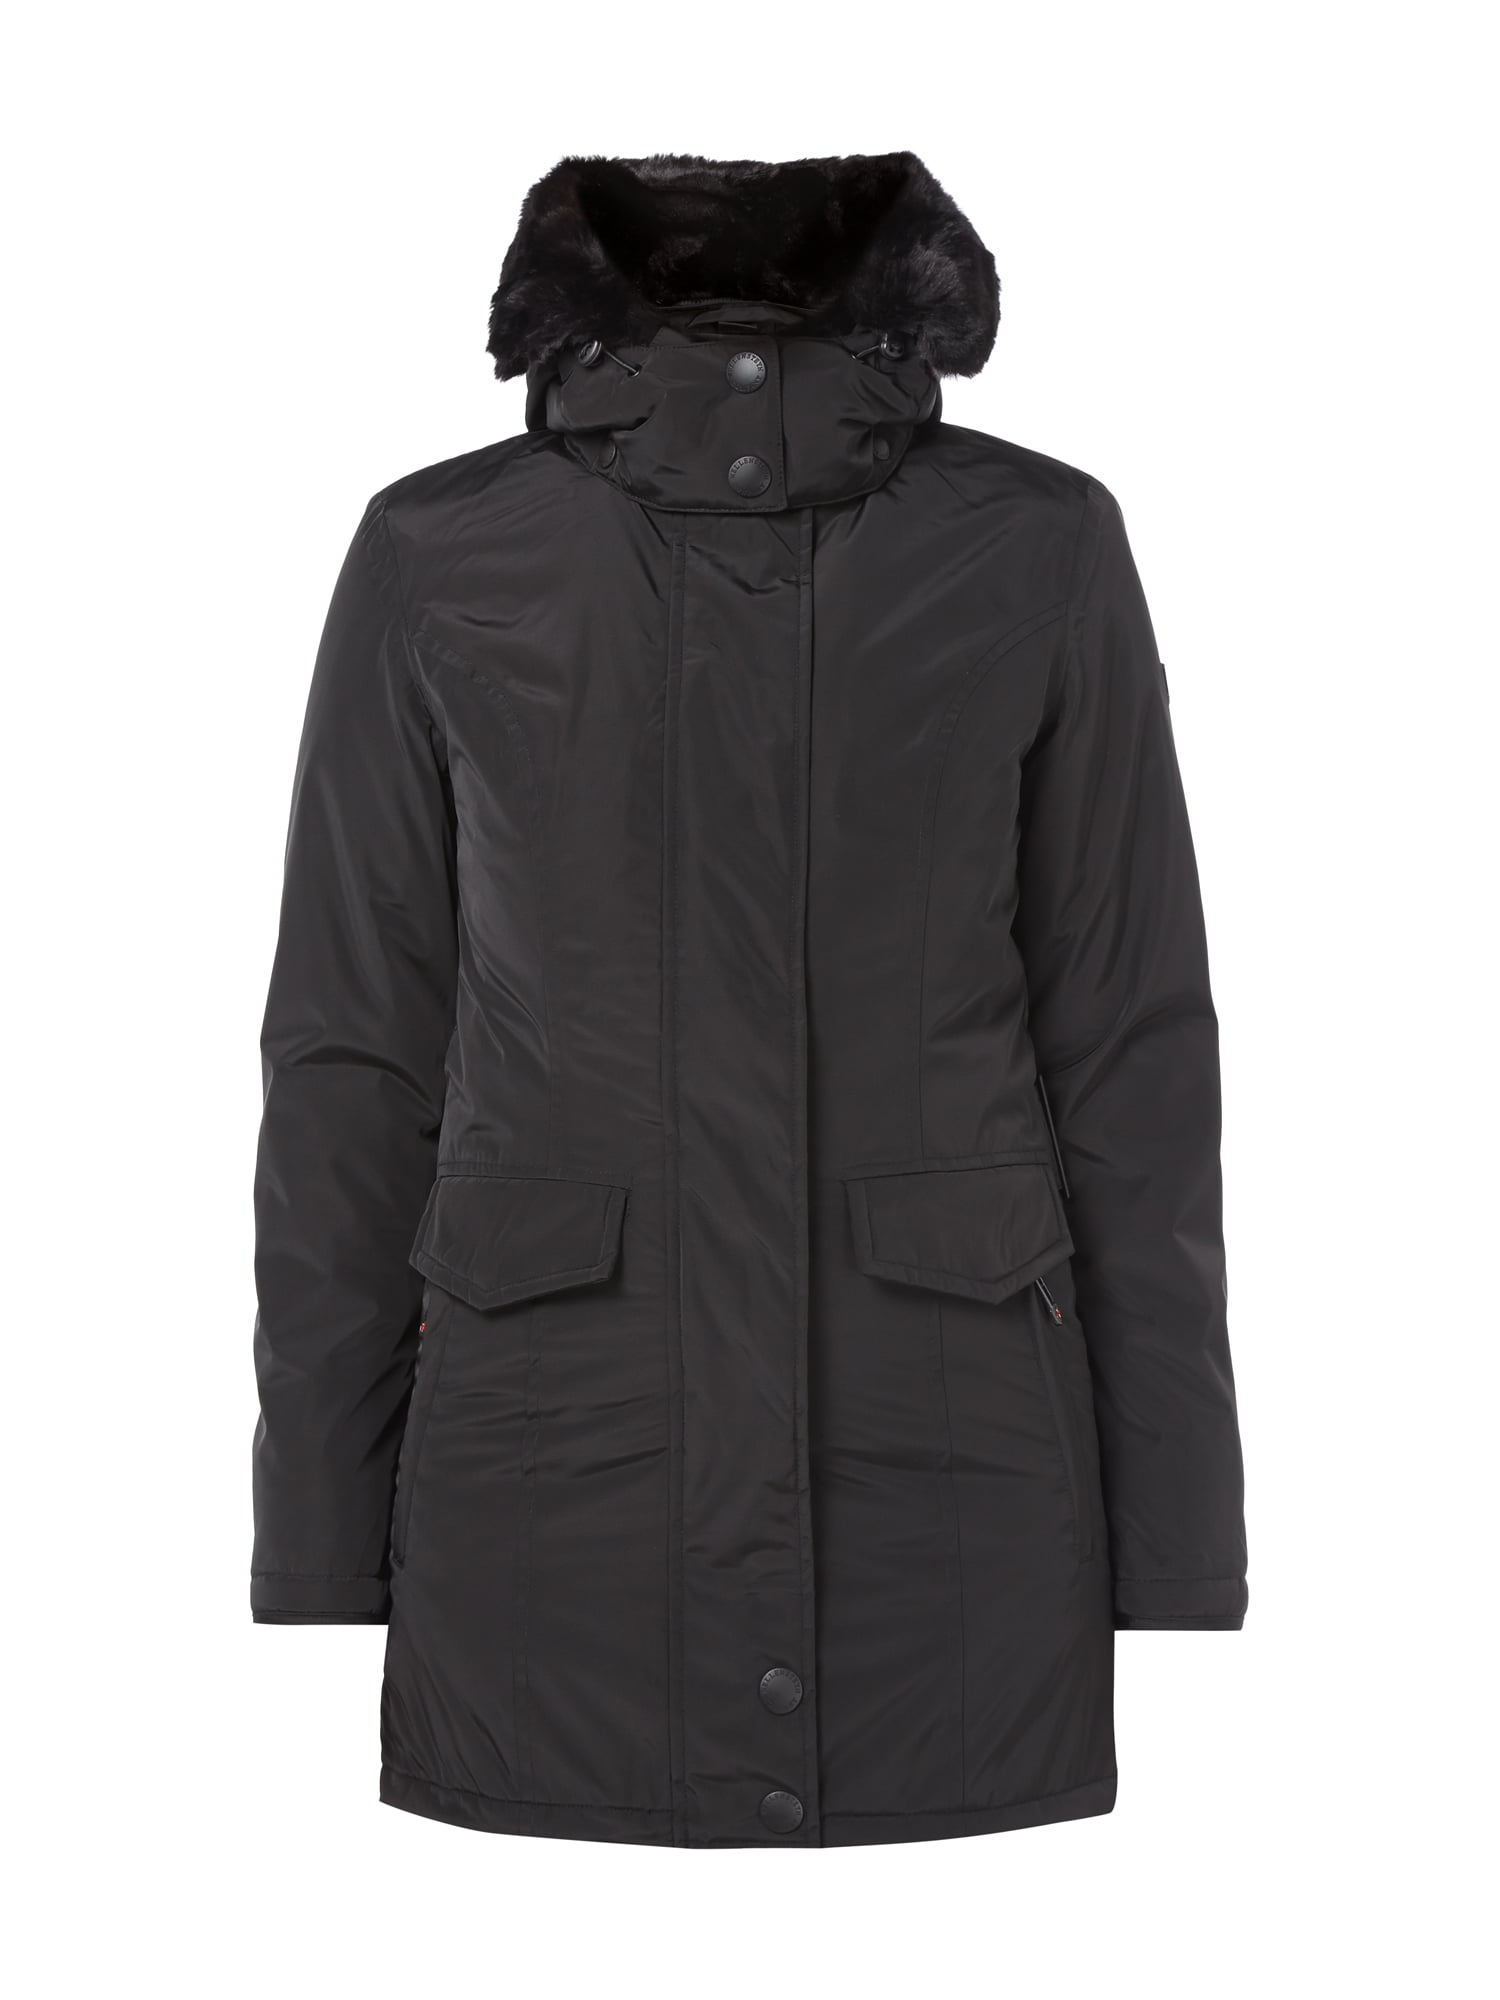 Winterjacken fur damen in schwarz